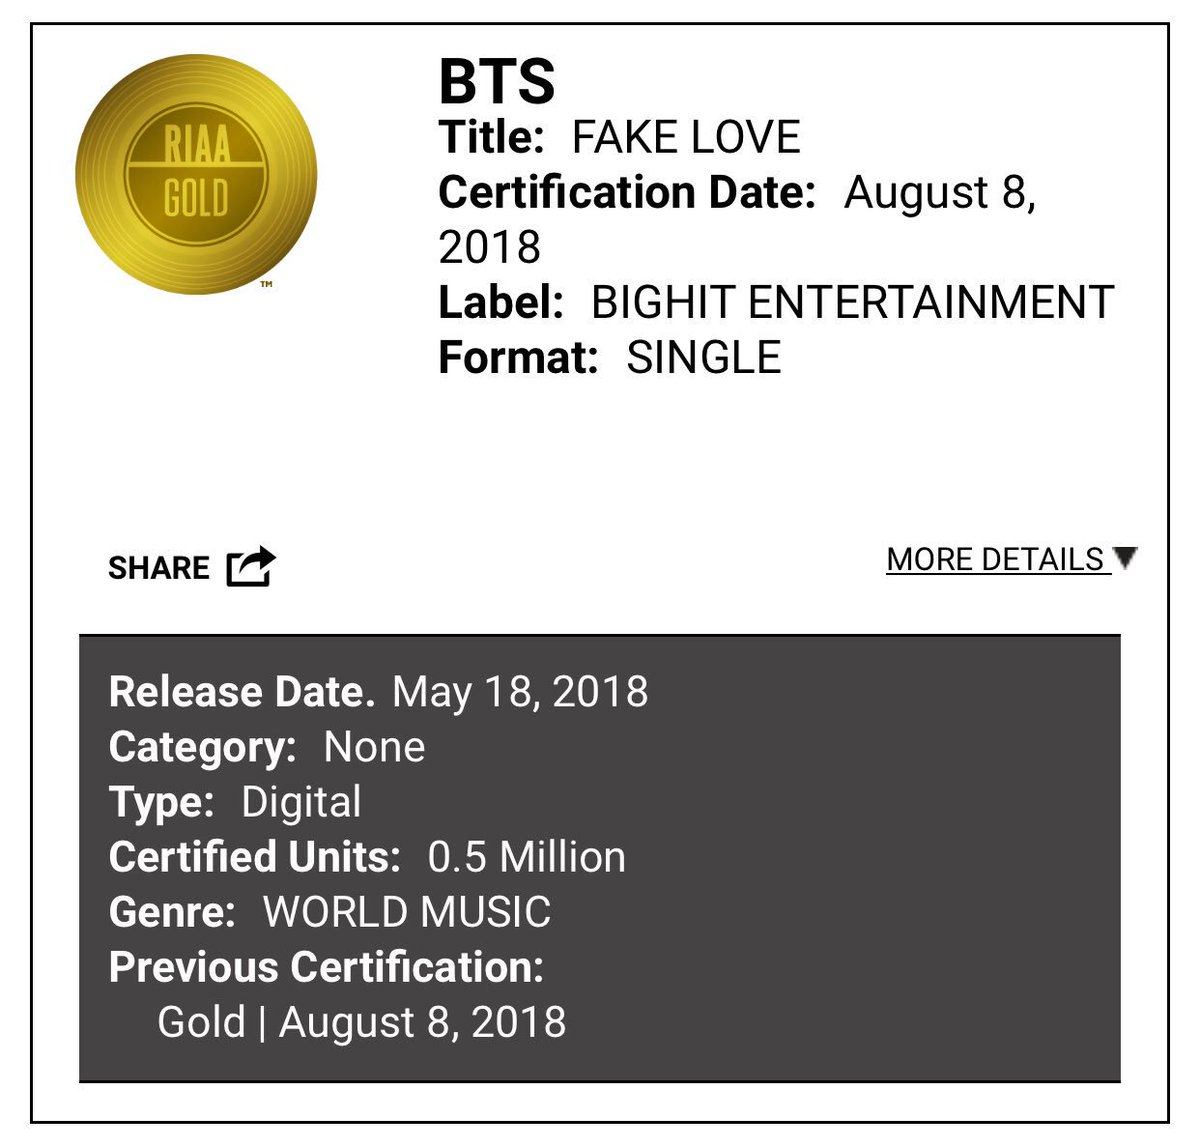 Congrats to @BTS_twt on their 3rd Gold Record! To see that it was awarded on 8/8--lucky numbers in Korea--brought back all kinds of feels, thinking about what it took for Korean artists to get here.🇰🇷FWIW, Id buy all 500k copies of #Epiphany.💰#FakeLoveWentGold @RecordingAcad